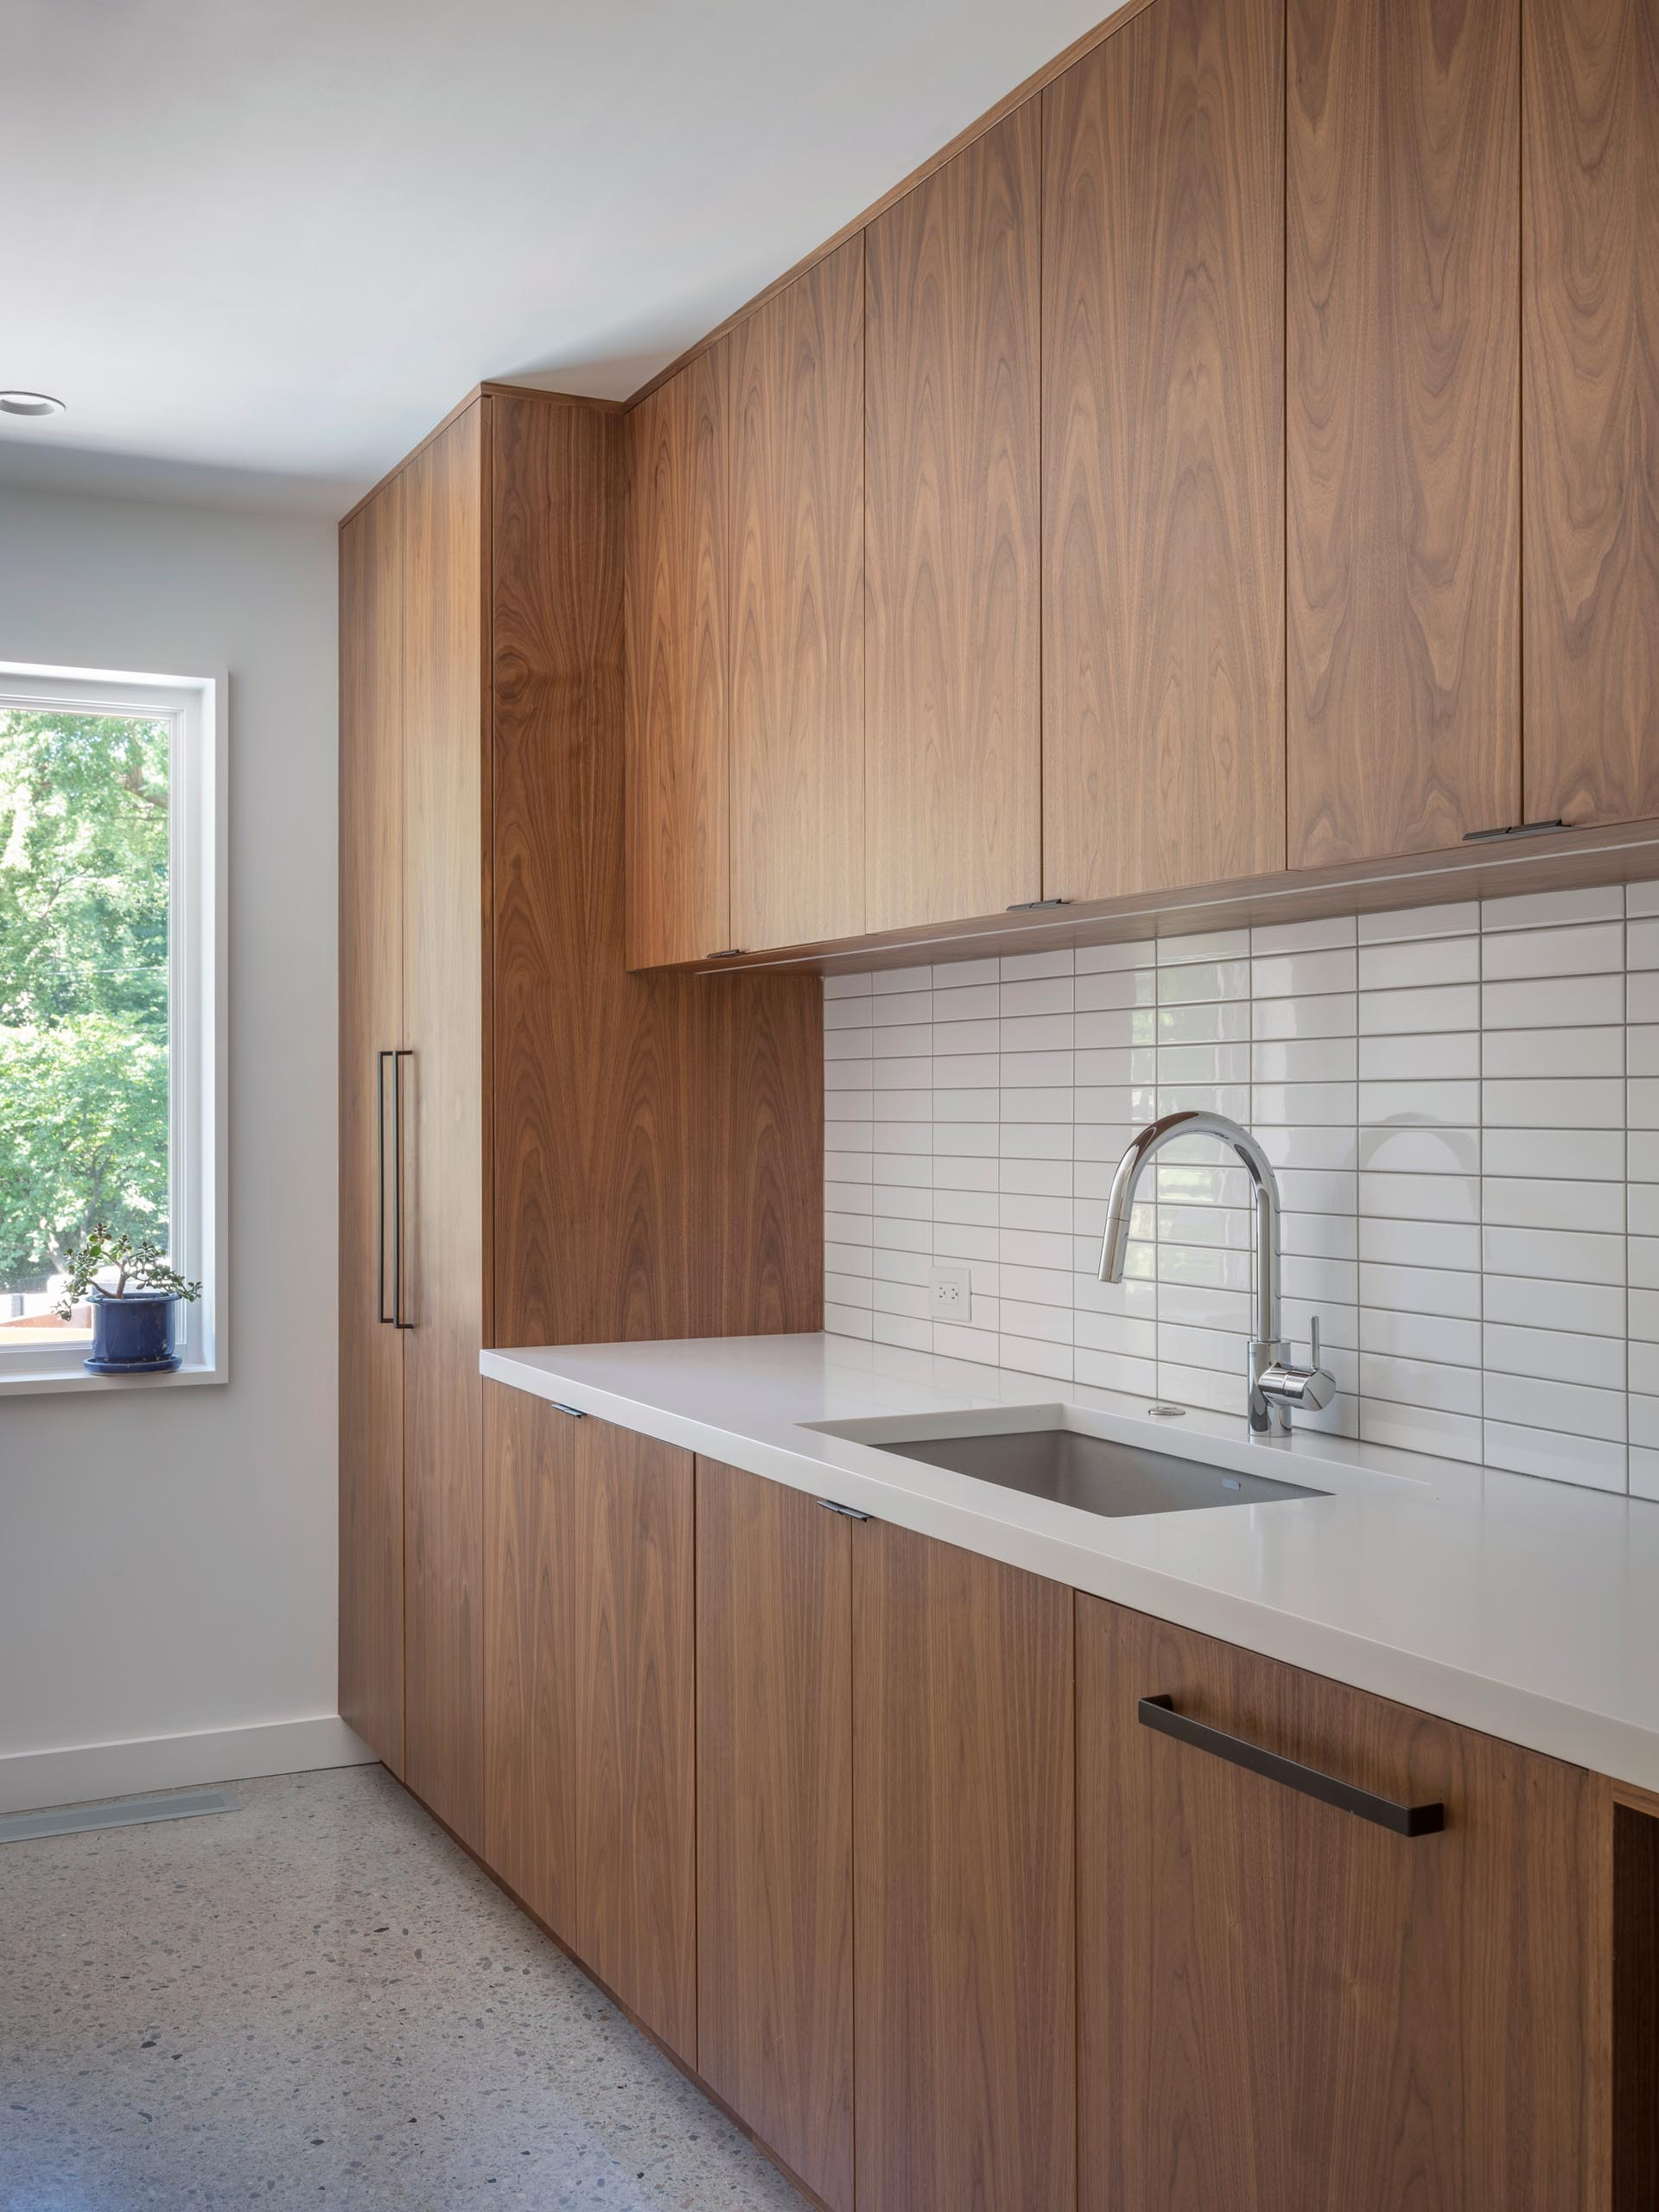 A modern laundry room with wood cabinets, a white countertop, undermount sink, and white subway tiles.